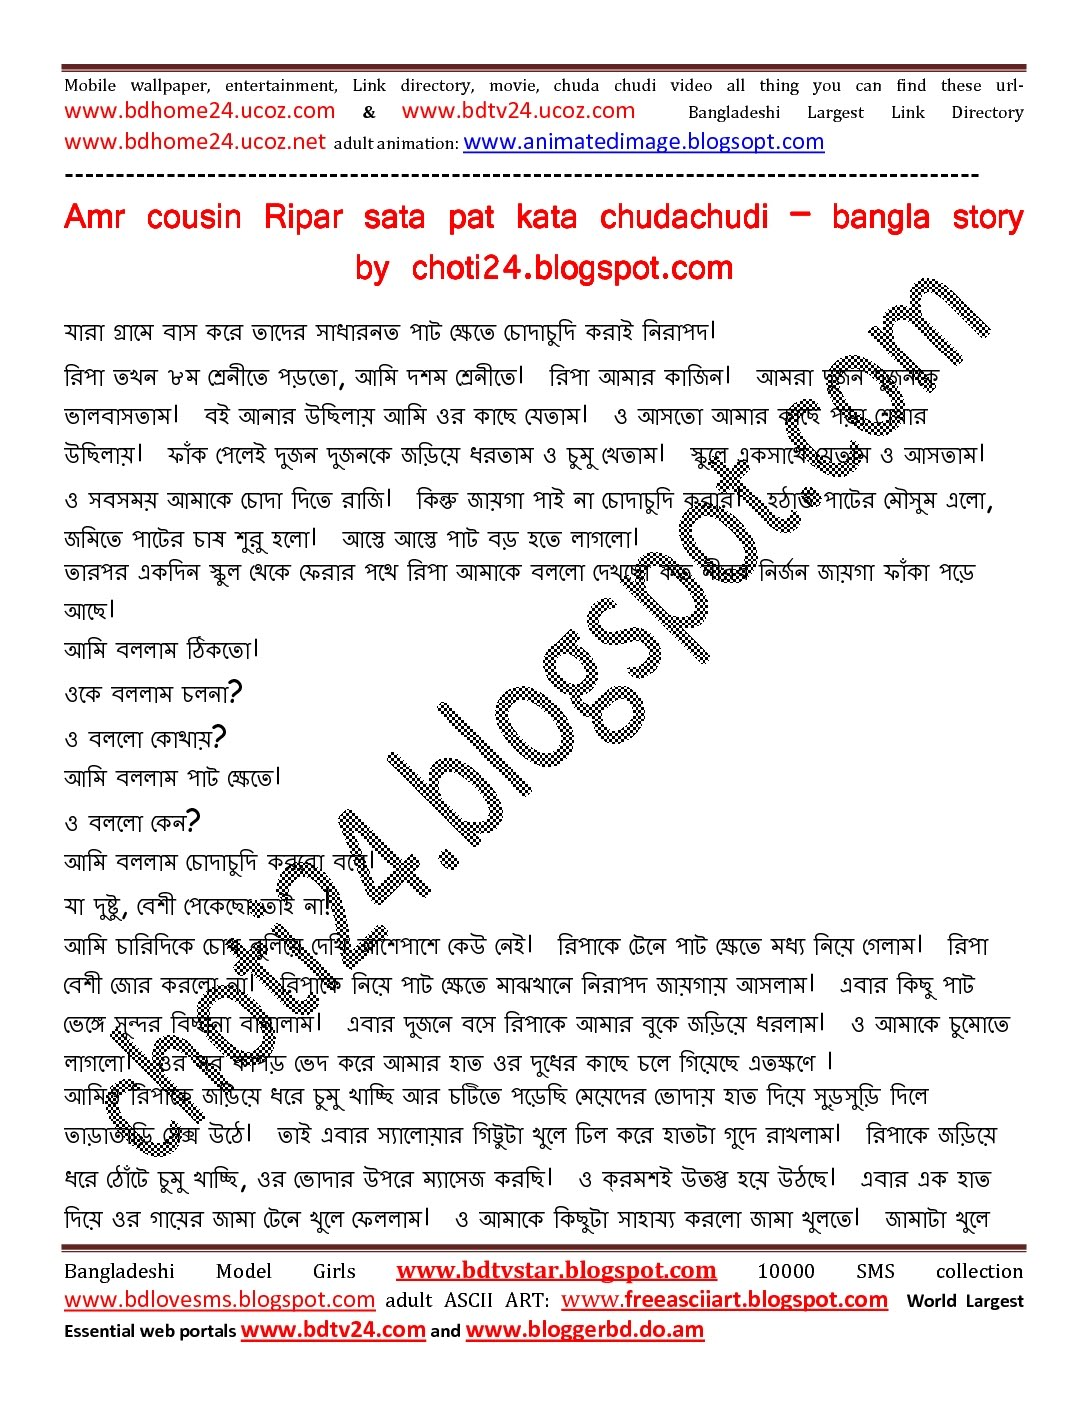 ... choda for free, rip bangla magi and videos by/like bangla magi nongra